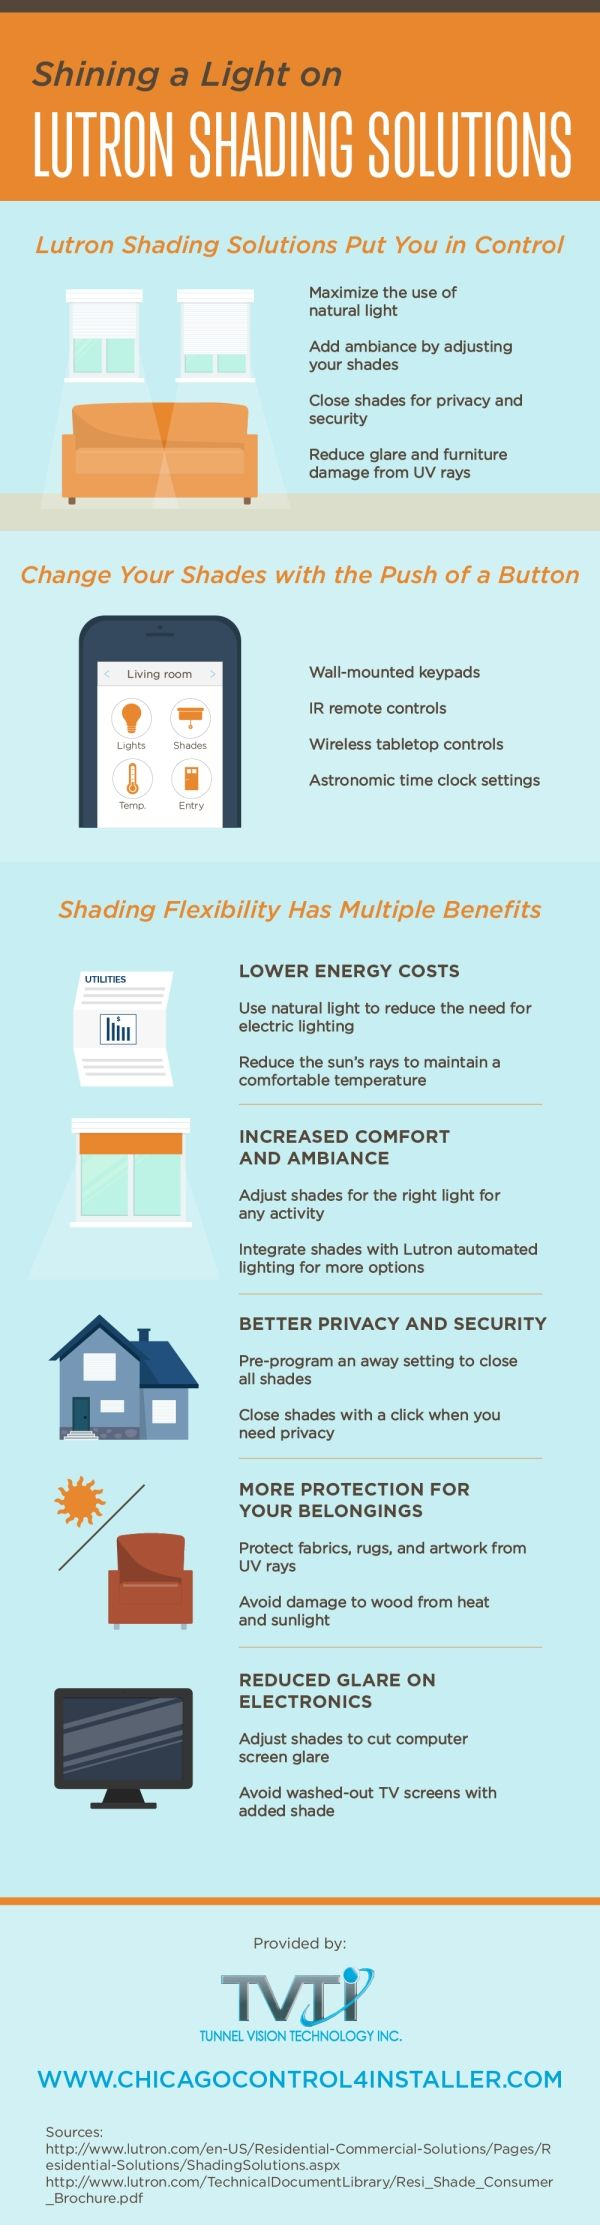 If you re interested in remodeling your home contact us to learn - The Sun S Rays Can Make Your Home Uncomfortable As Well As Wear Away Your Furniture And